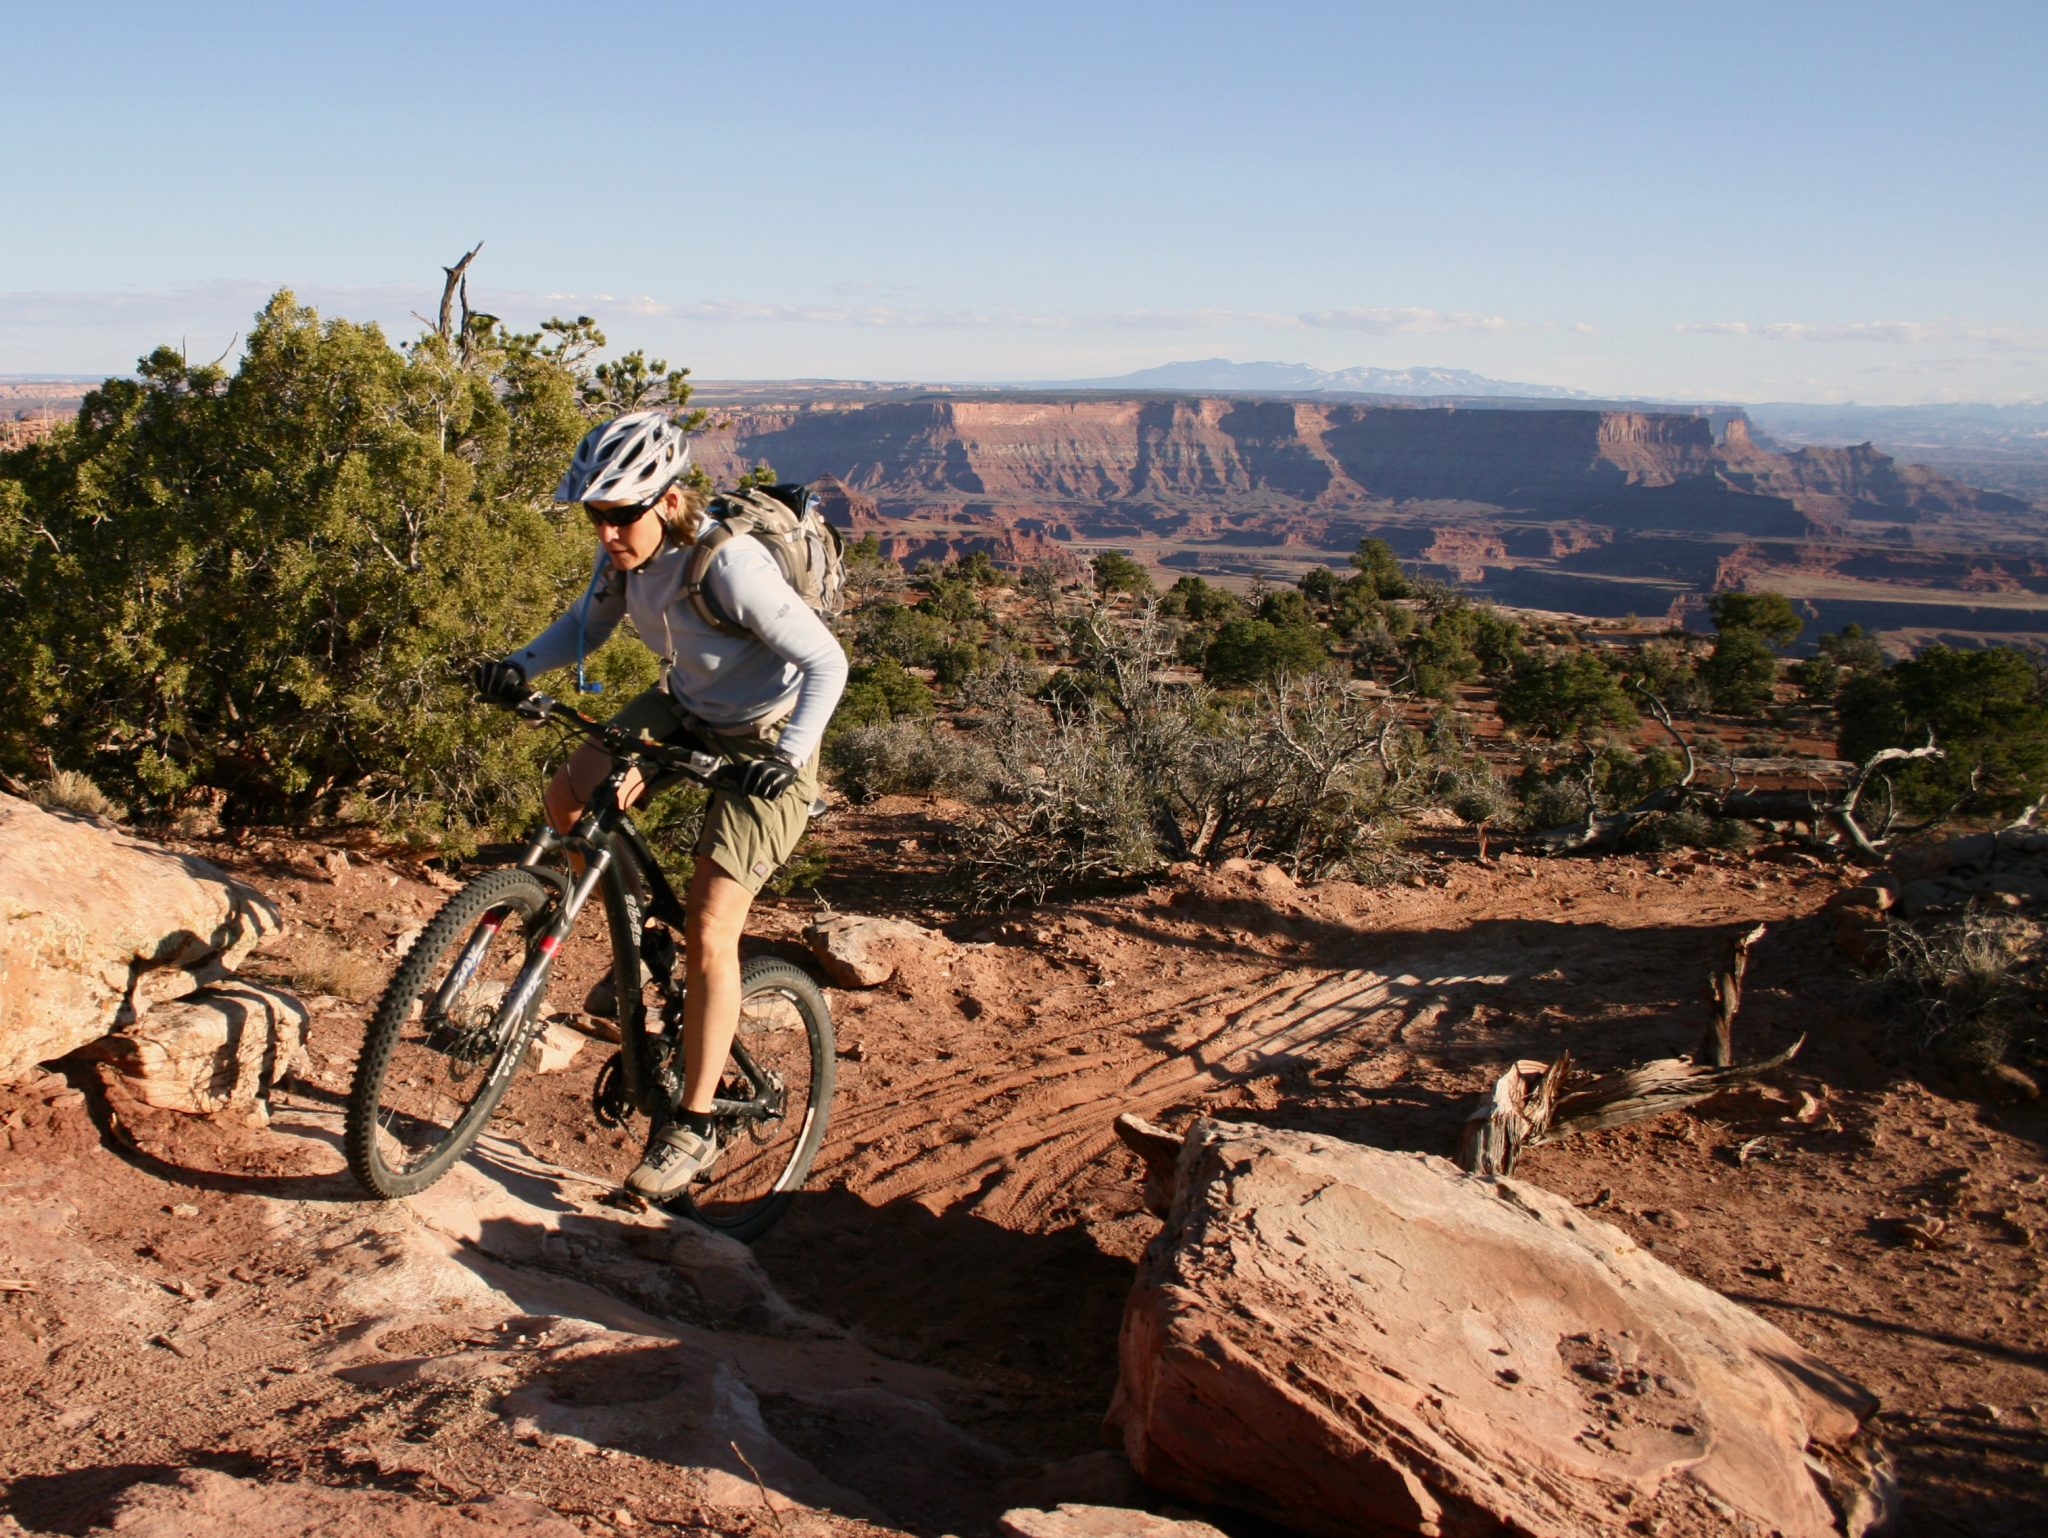 Views from Dead Horse Singletrack down into the Colorado River basin make it one of the most popular mtb trails in Moab